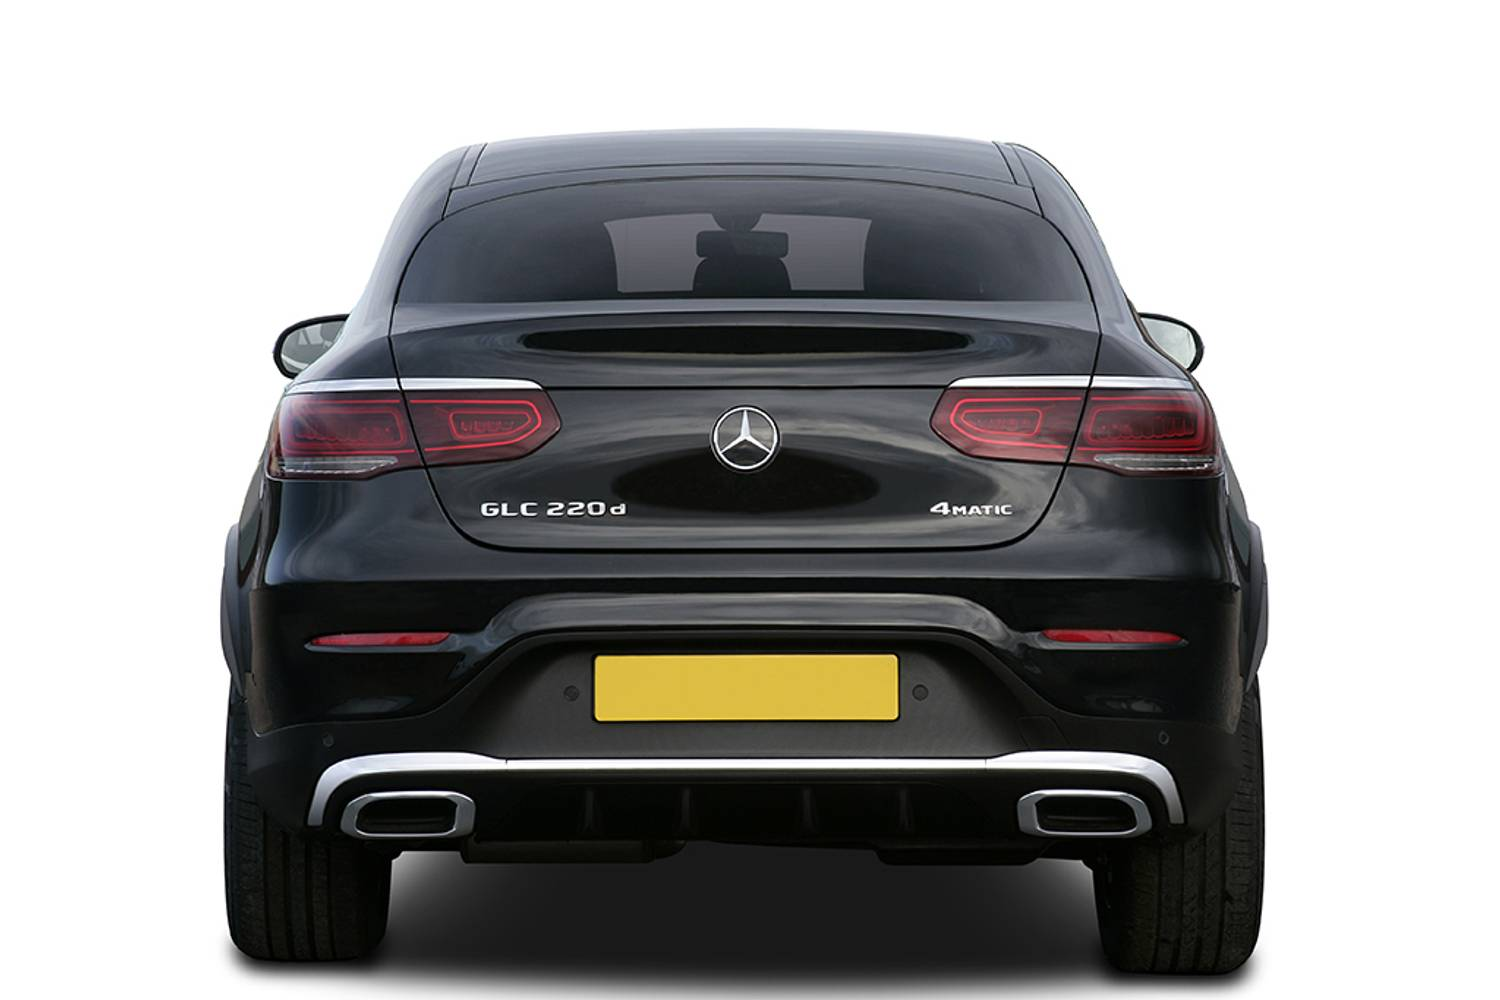 New Mercedes Benz Glc Diesel Coupe Glc 220d 4matic Amg Line 5 Door 9g Tronic 2019 For Sale